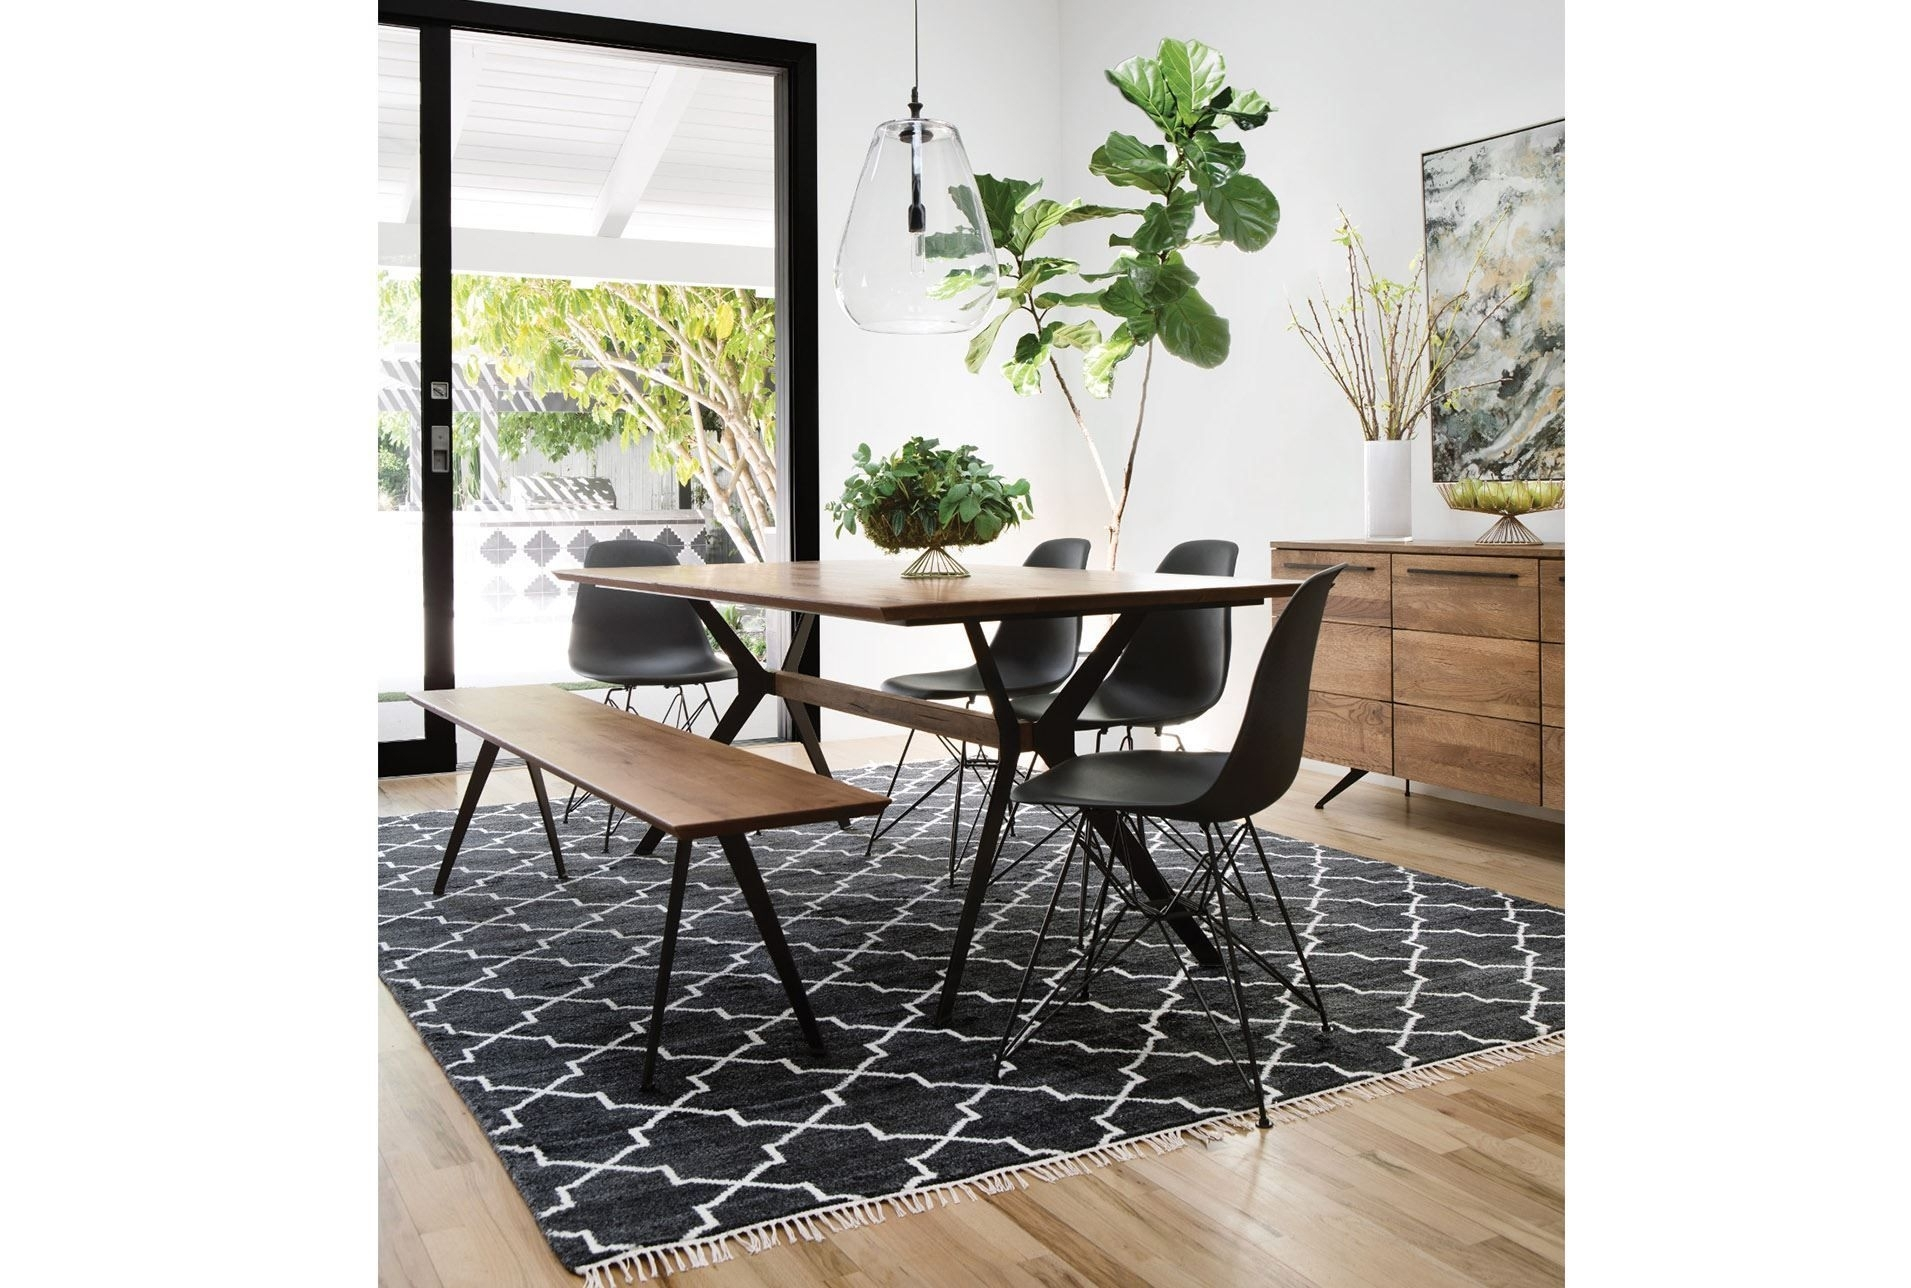 Weaver Dining Table | Pandora Interior | Pinterest | Living Spaces Regarding Most Recently Released Weaver Ii Dining Tables (View 4 of 20)